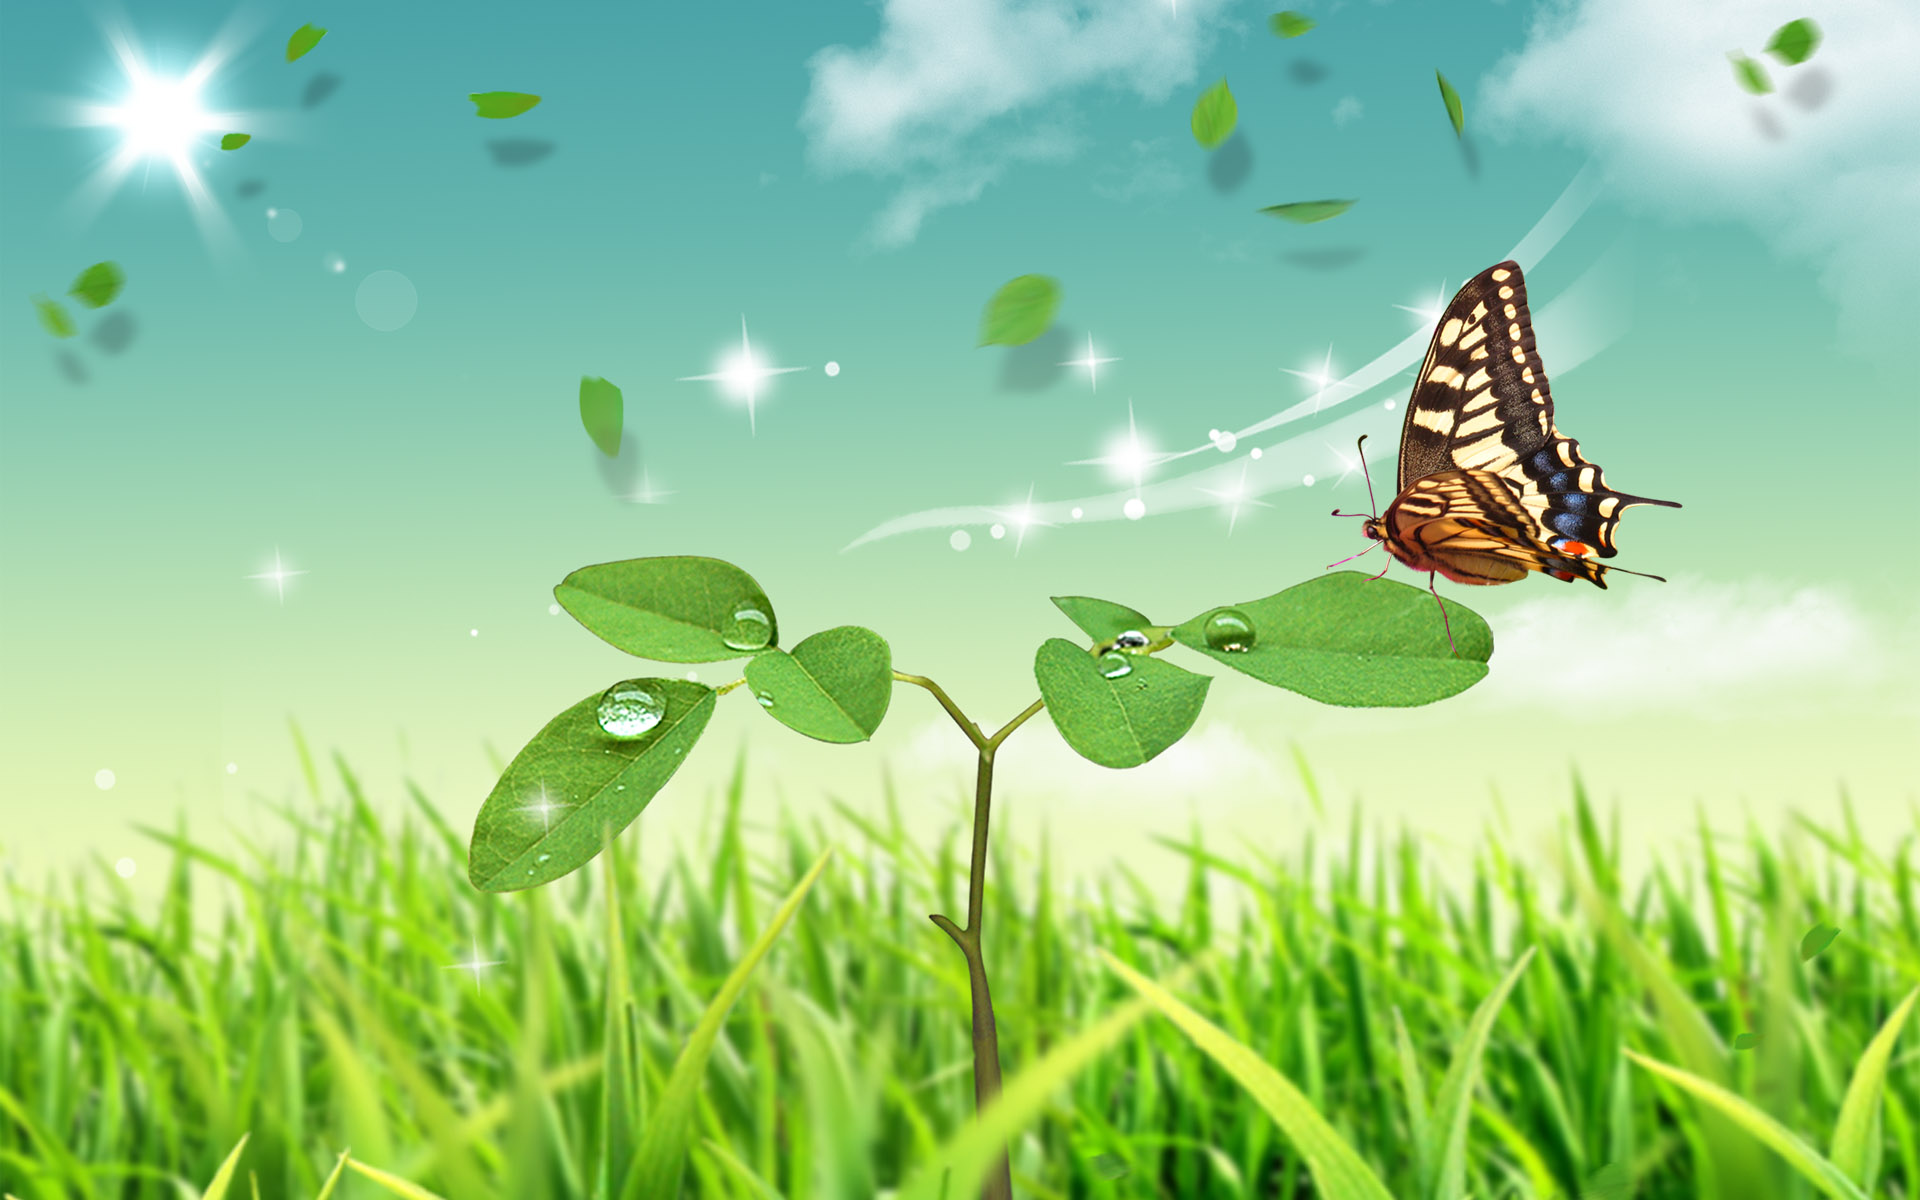 Natural scenery wallpaper butterfly and green plants click to